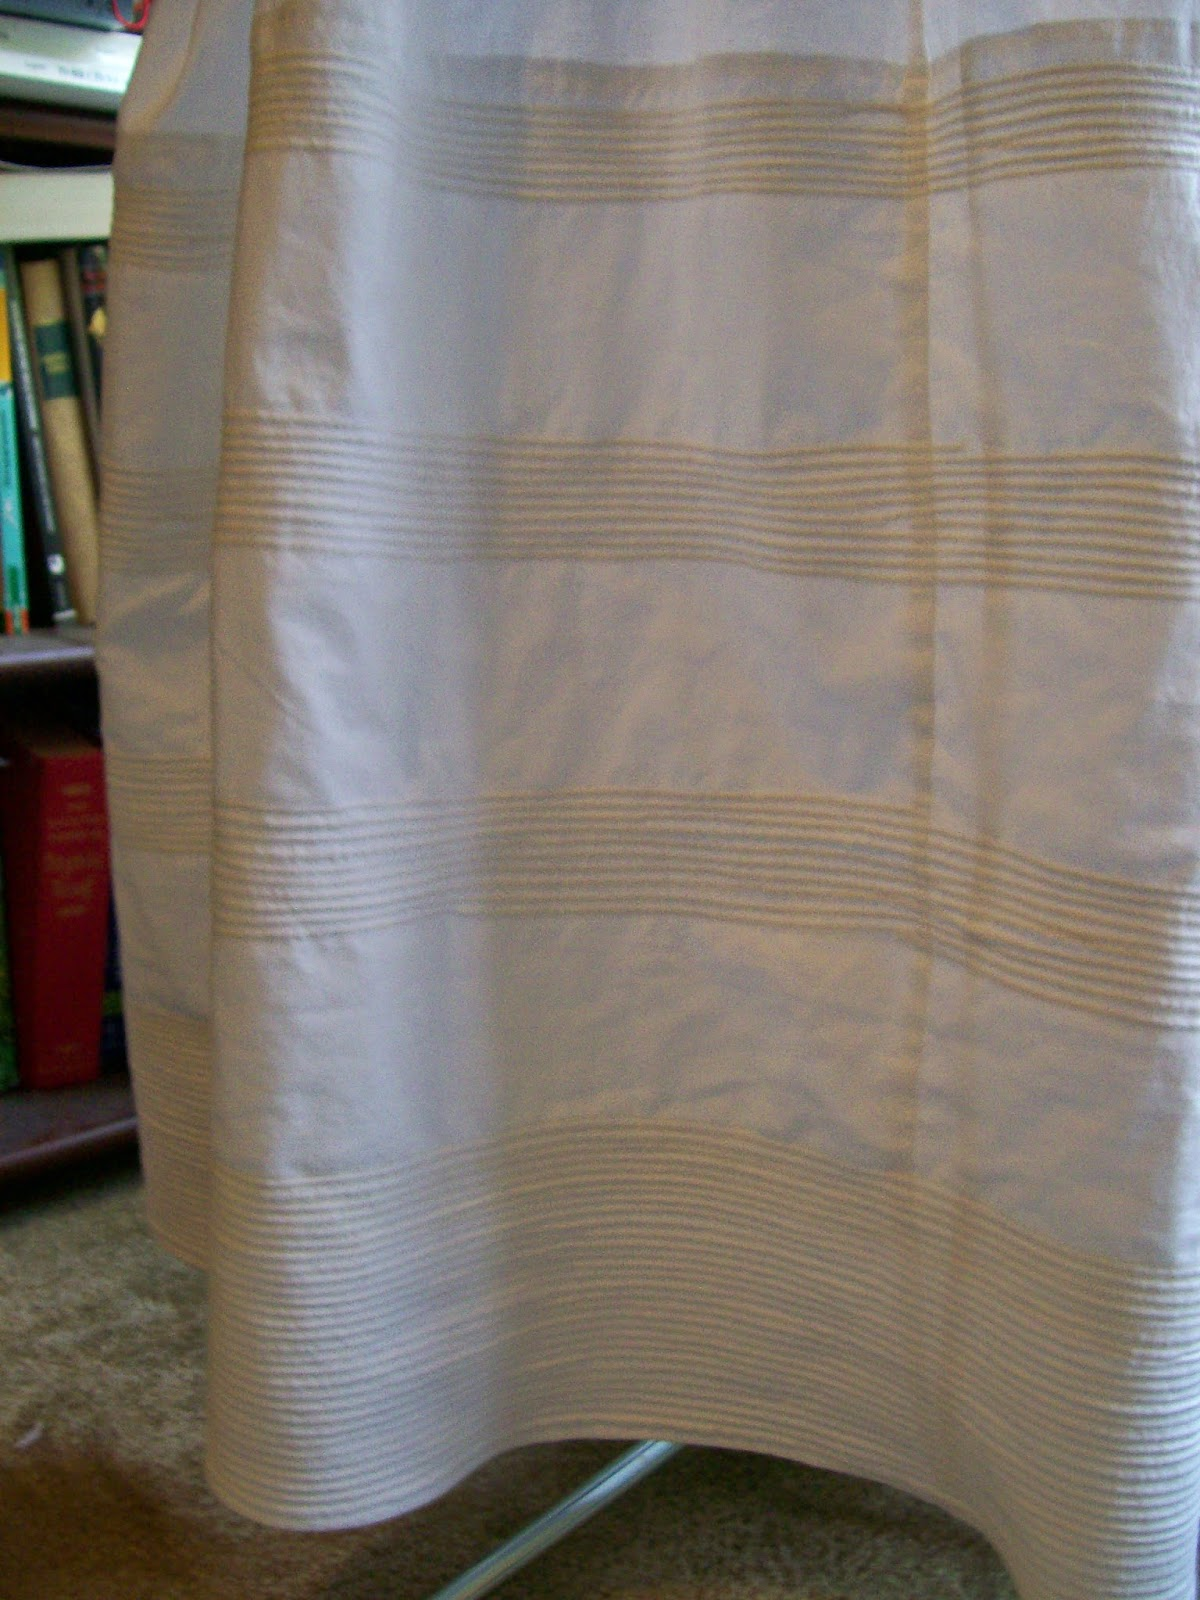 Detail of cording in white cotton petticoat, pre- Civil War.